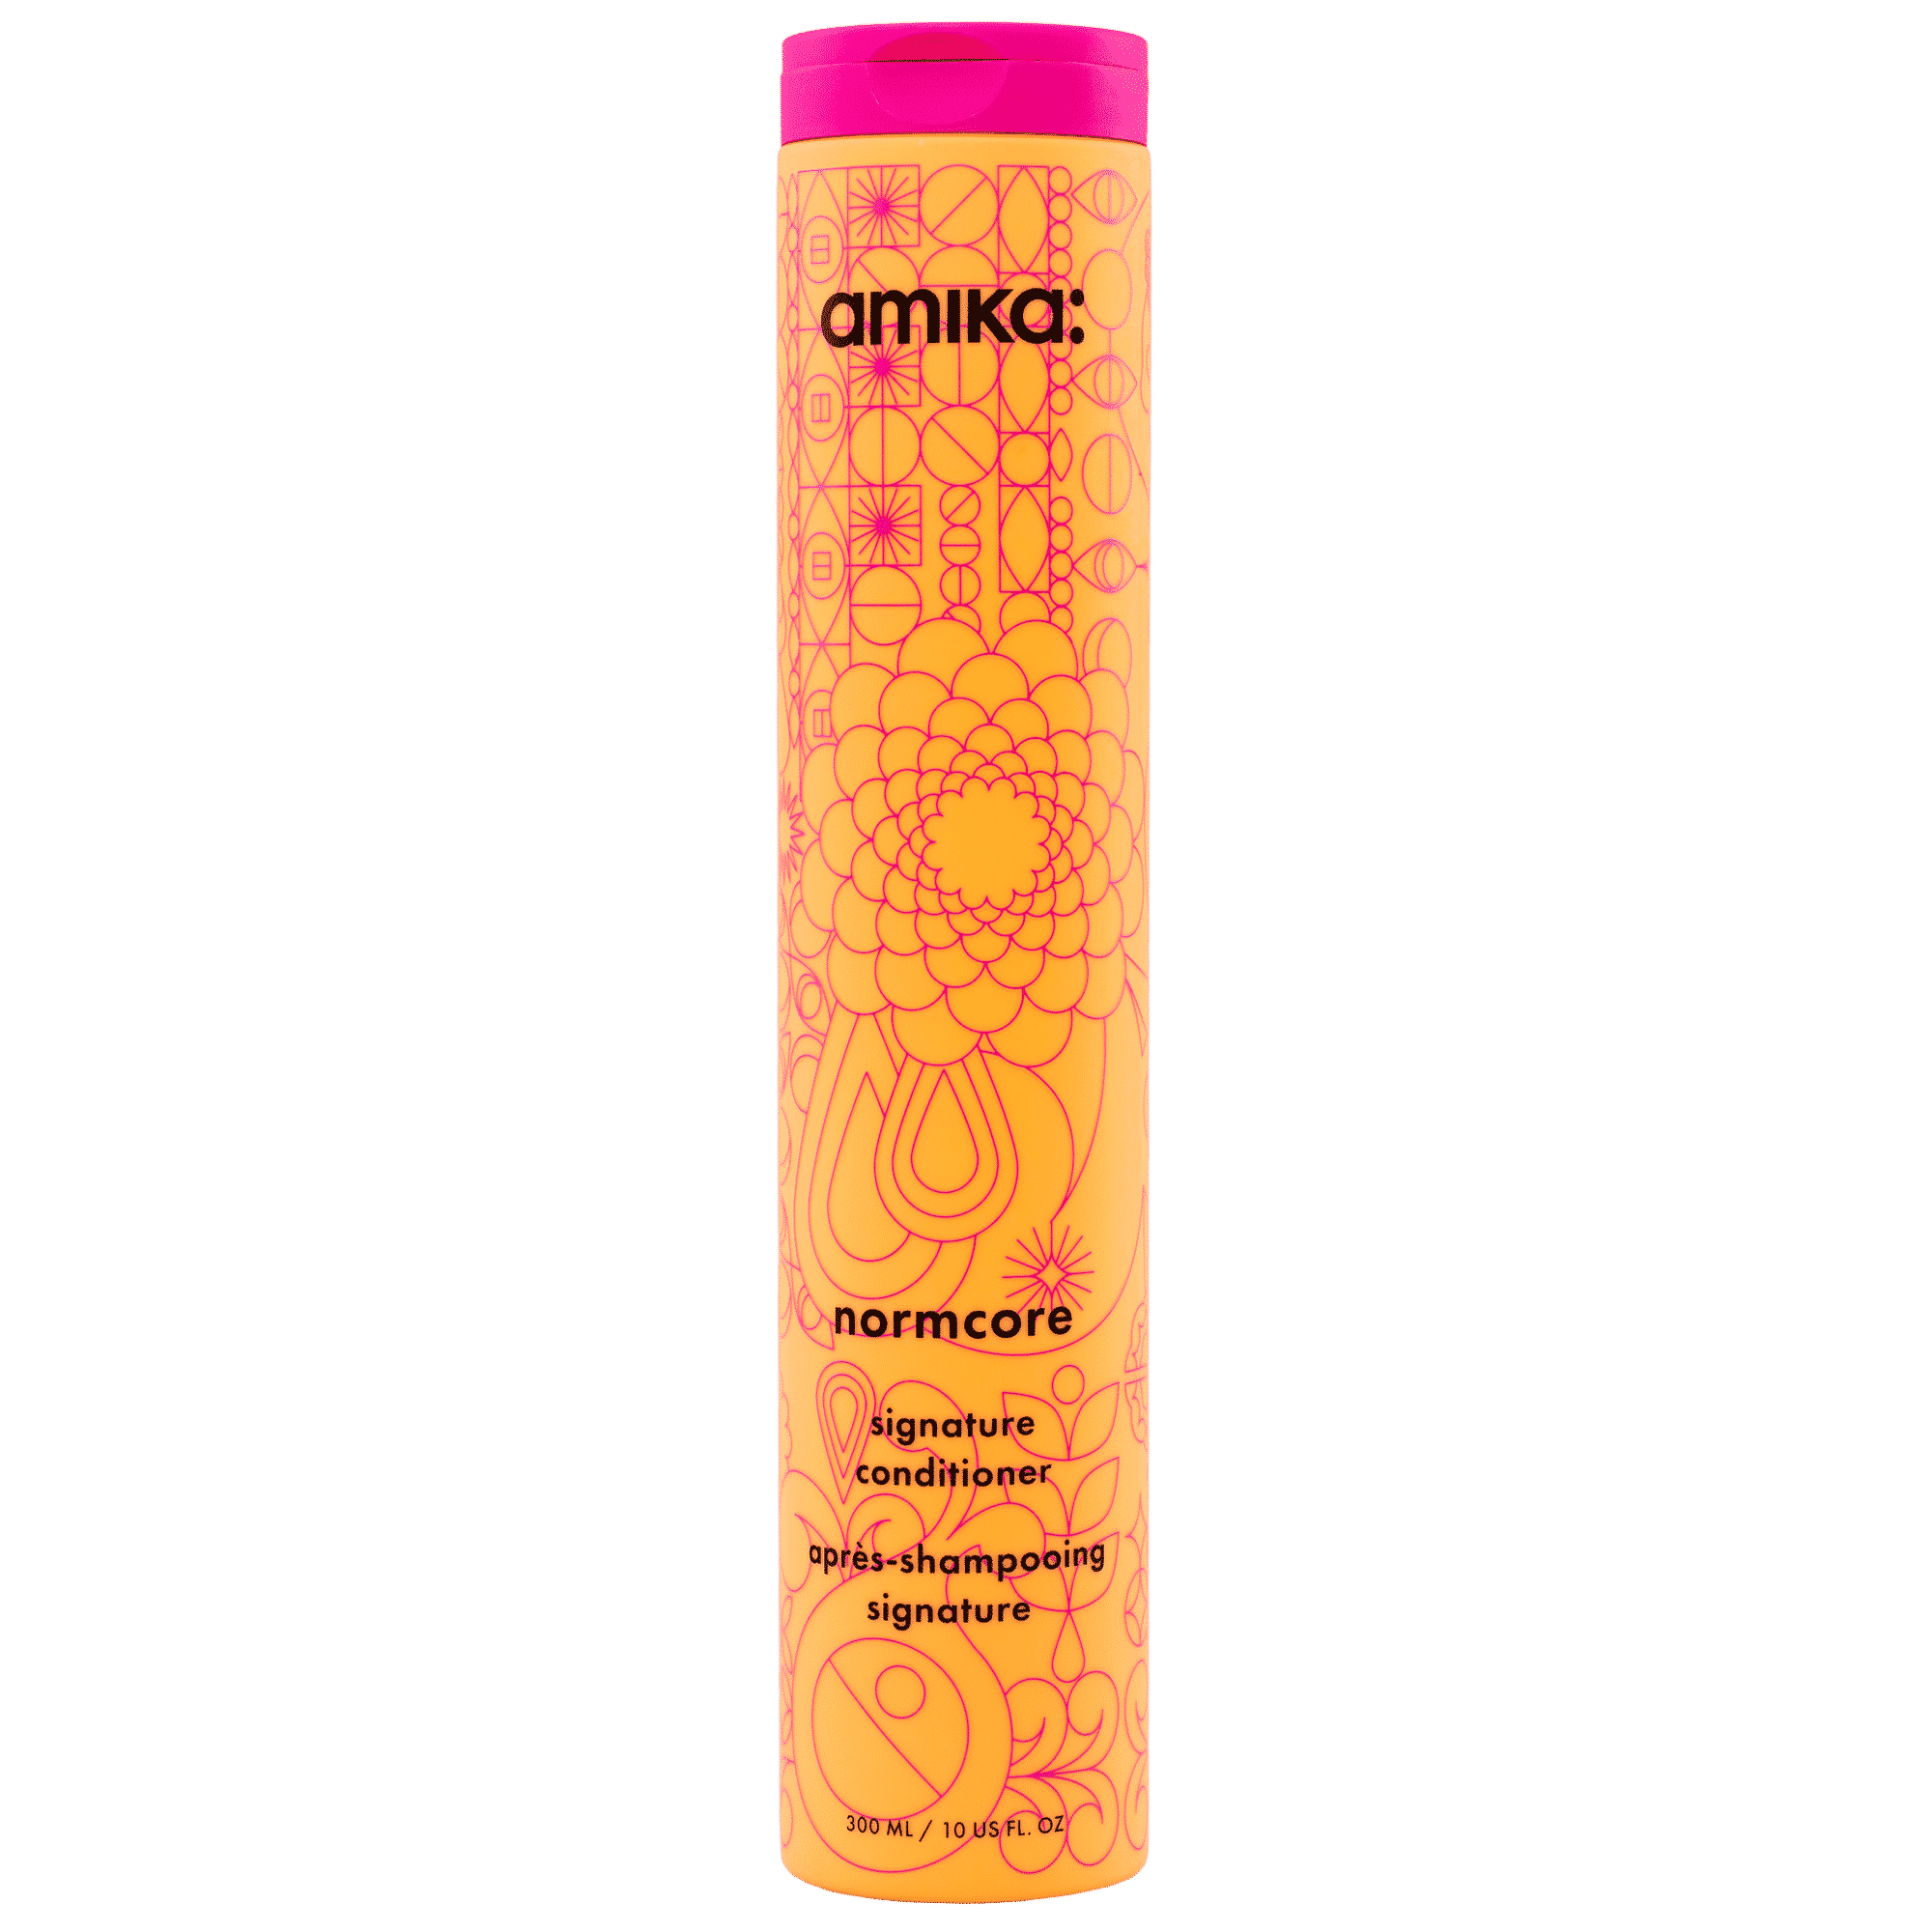 Amika Normcore Conditioner